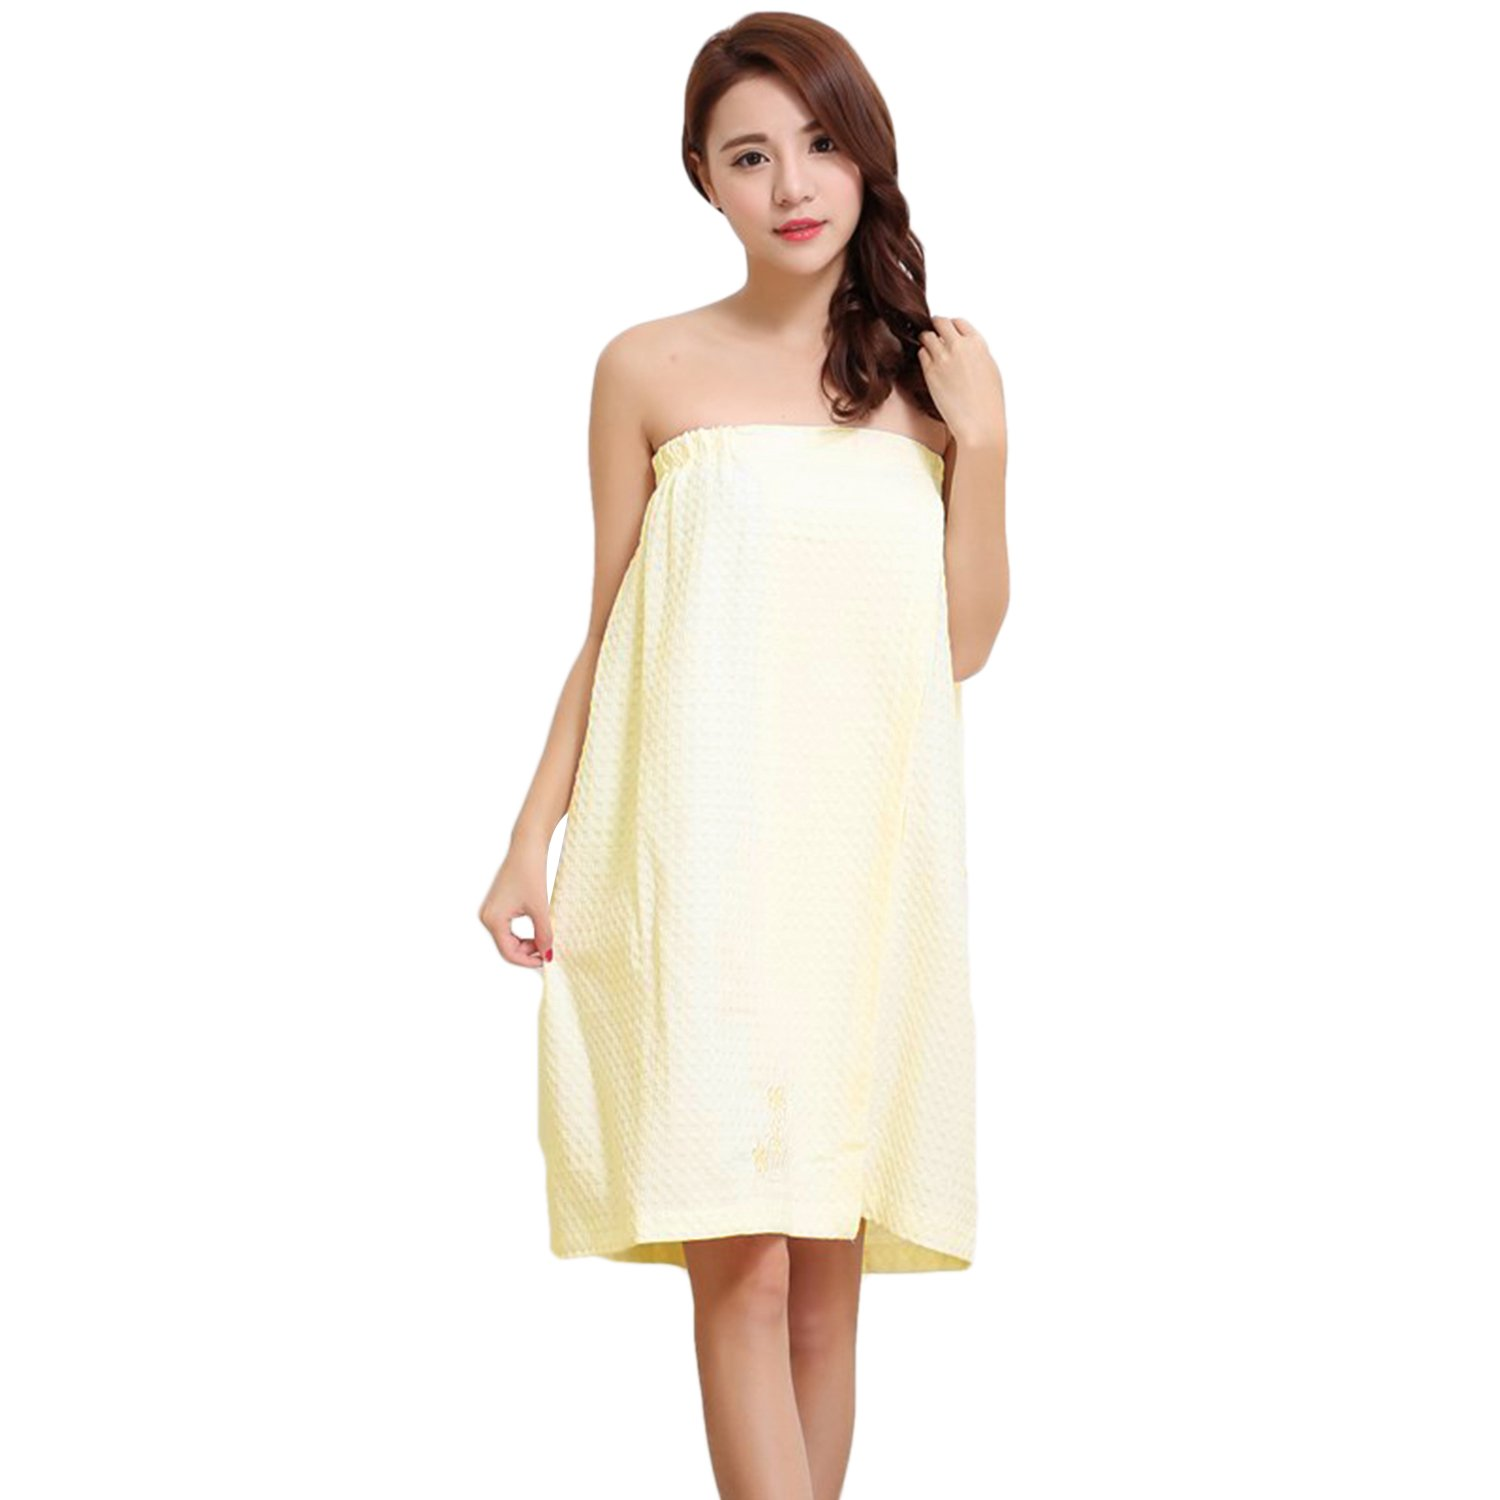 b640036b8b Women s Cotton Bathrobe Cover Up Elastic Wearable Soft Beach Spa Shower  Bath Wrap Around Towel Tube Dress  Amazon.co.uk  Clothing